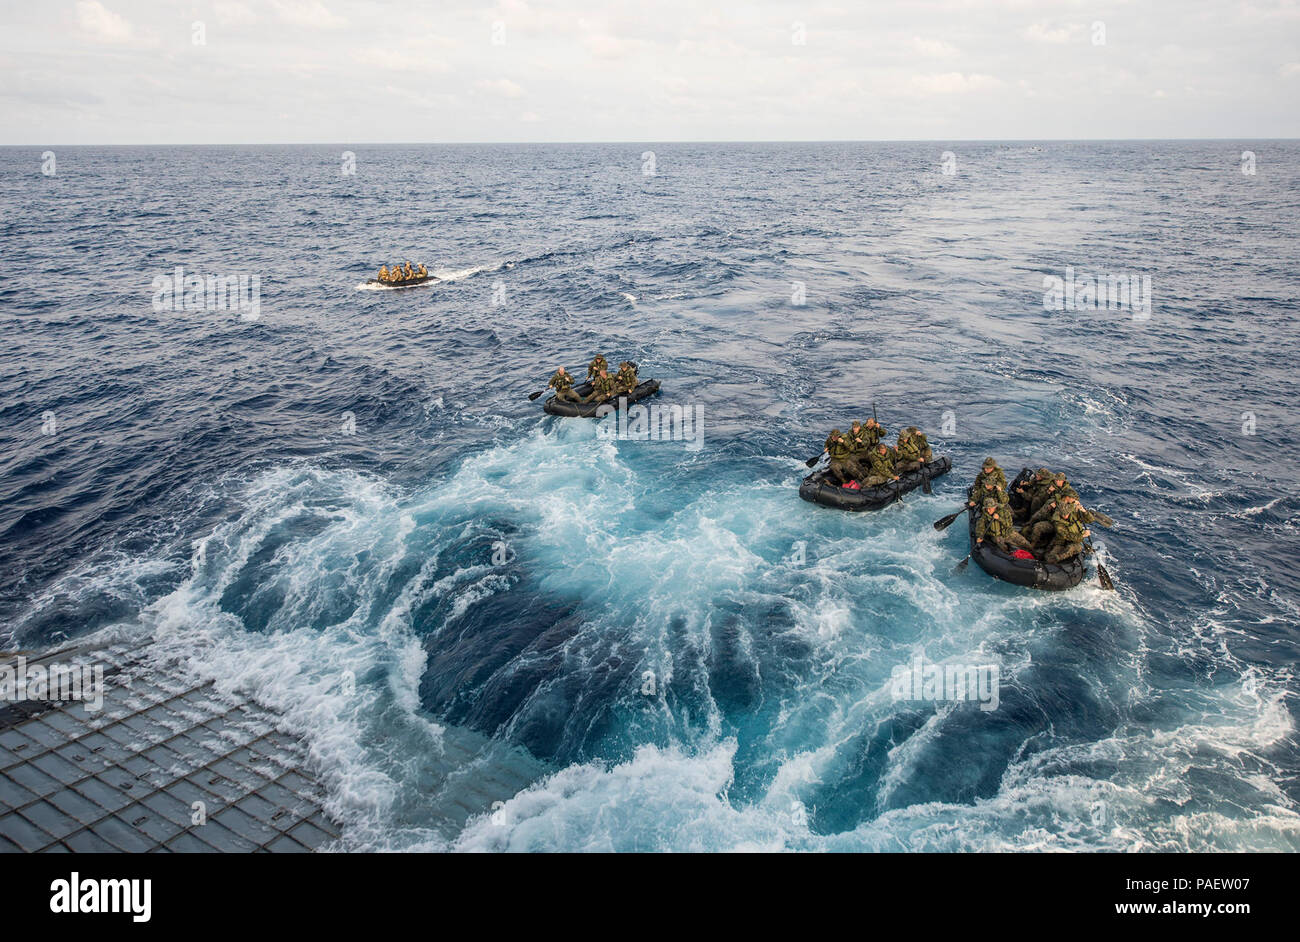 Marines assigned to Company F, Battalion Landing Team, 2nd Battalion, 5th Marines, 31st Marine Expeditionary Unit (31st MEU), conduct launch and recovery operations with combat rubber raiding craft from the well deck of the amphibious transport dock ship USS Denver (LPD 9). Denver is assigned to the Bonhomme Richard Amphibious Ready Group and is conducting operations in the U.S. 7th Fleet area of responsibility. Stock Photo